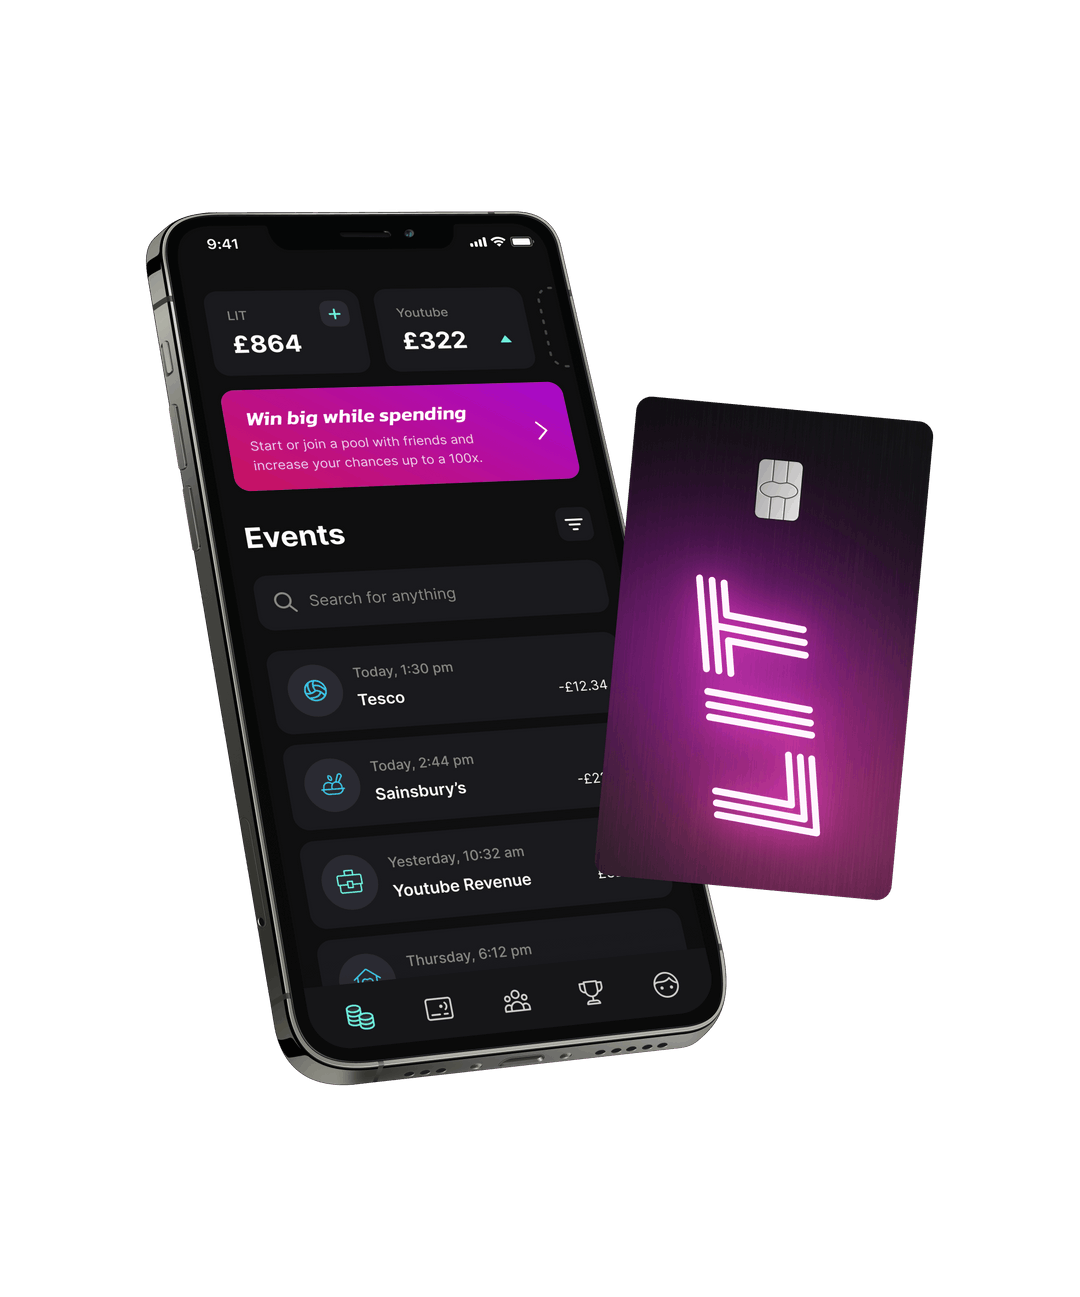 LIT app and card